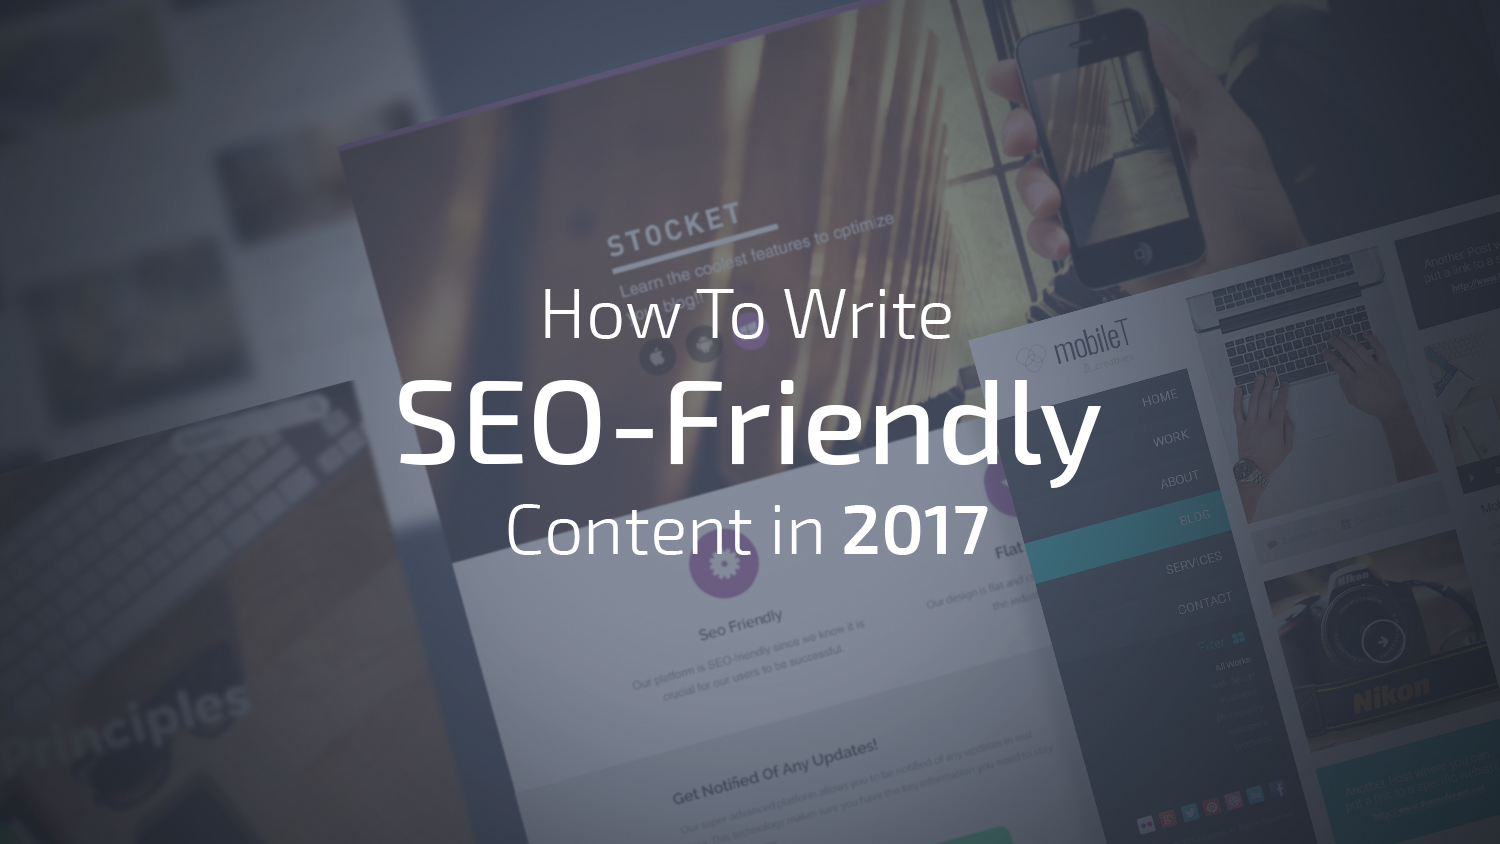 how to write seo-friendly content in 2017